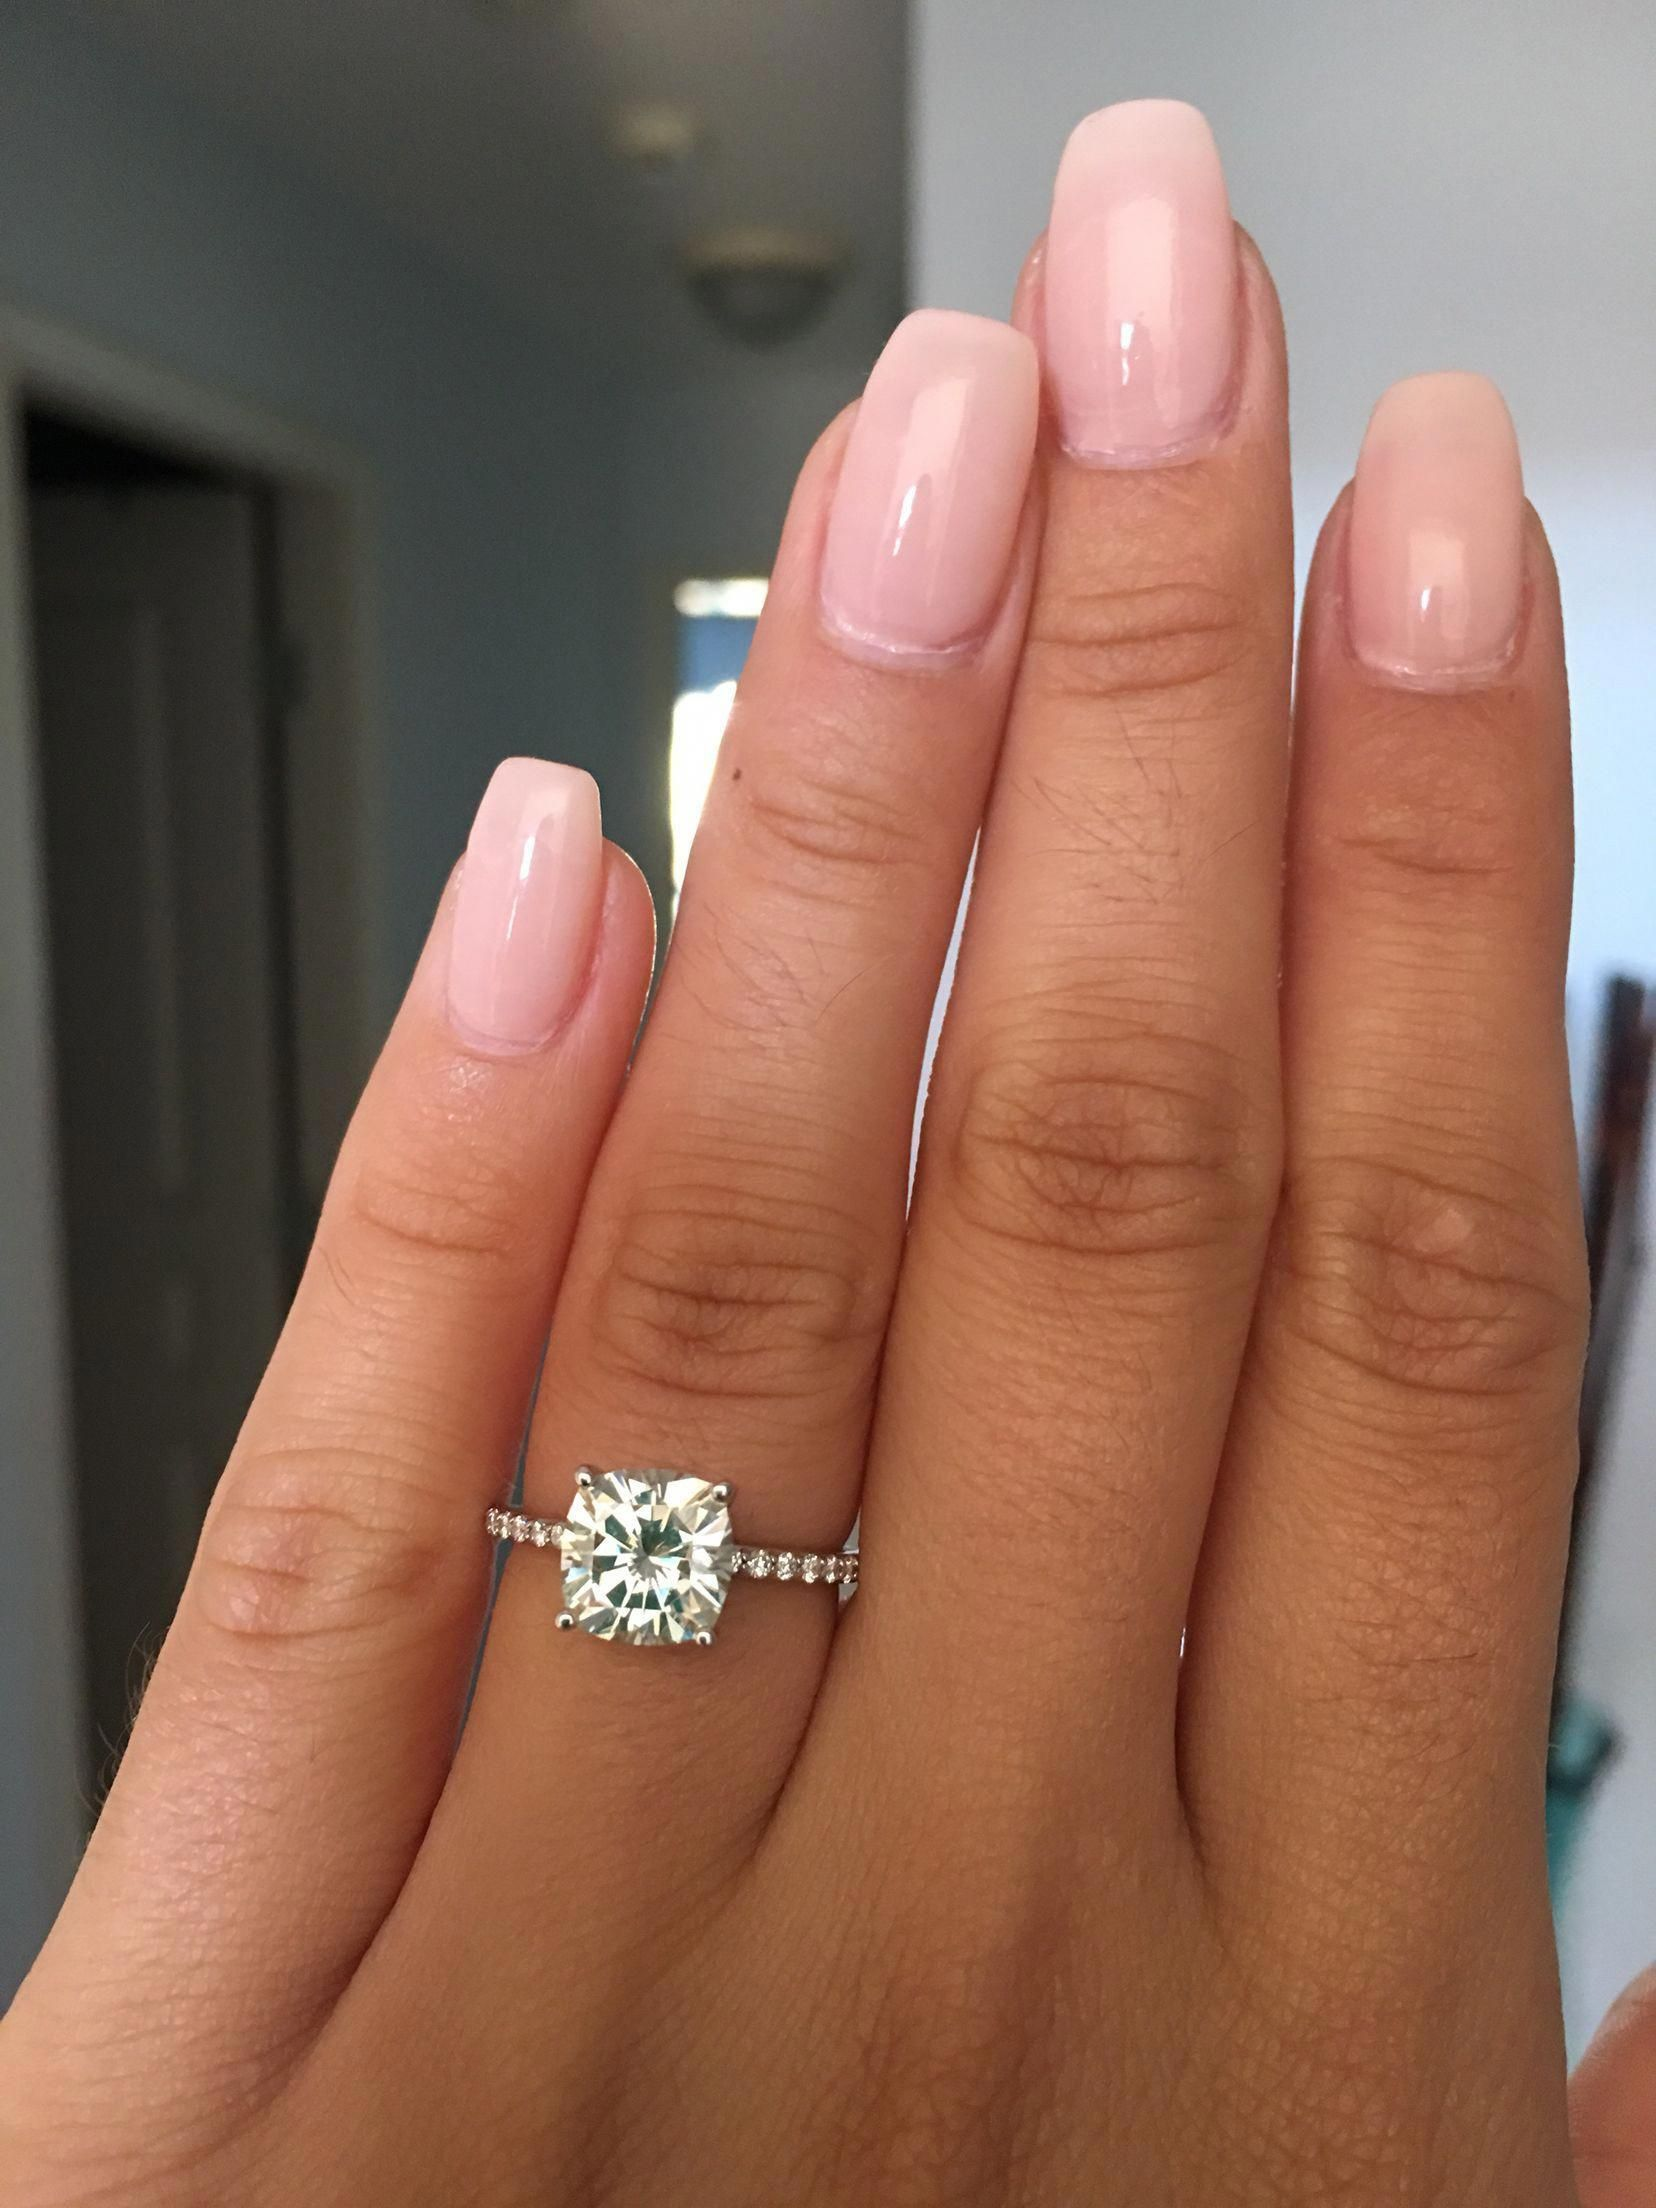 Pin on Finest Engagement Rings